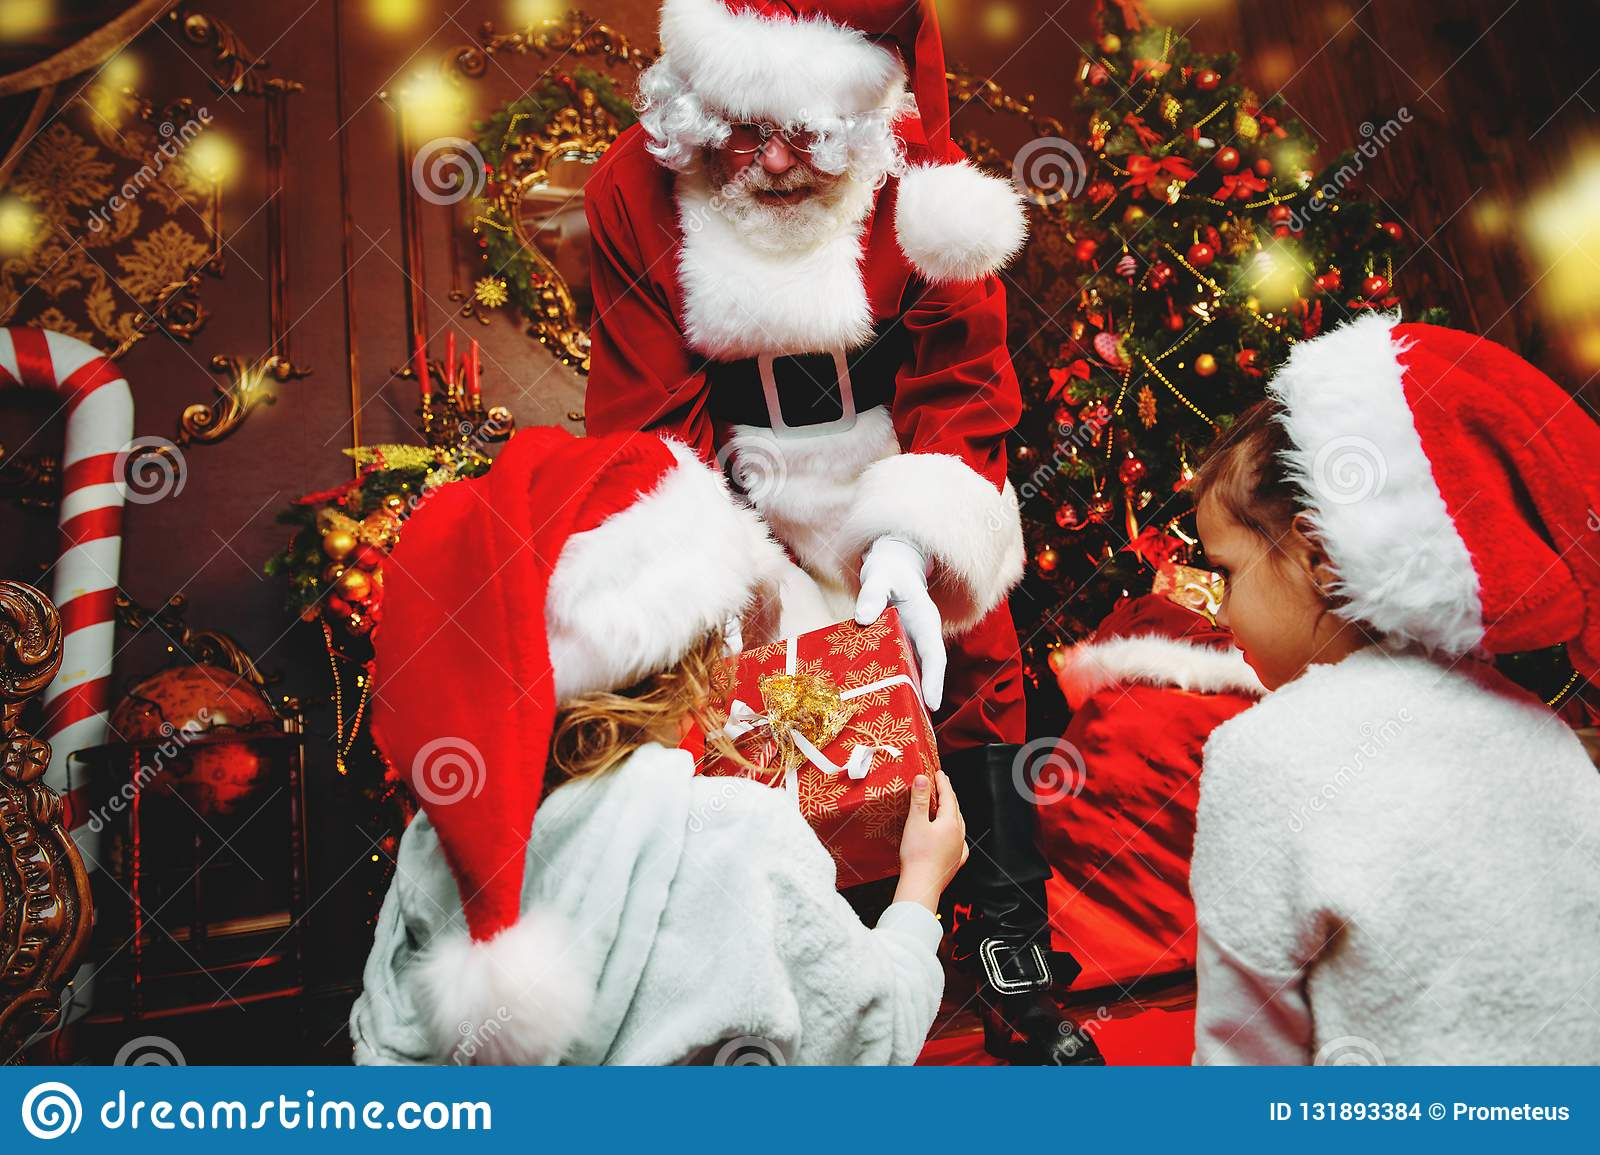 Giving presents to children